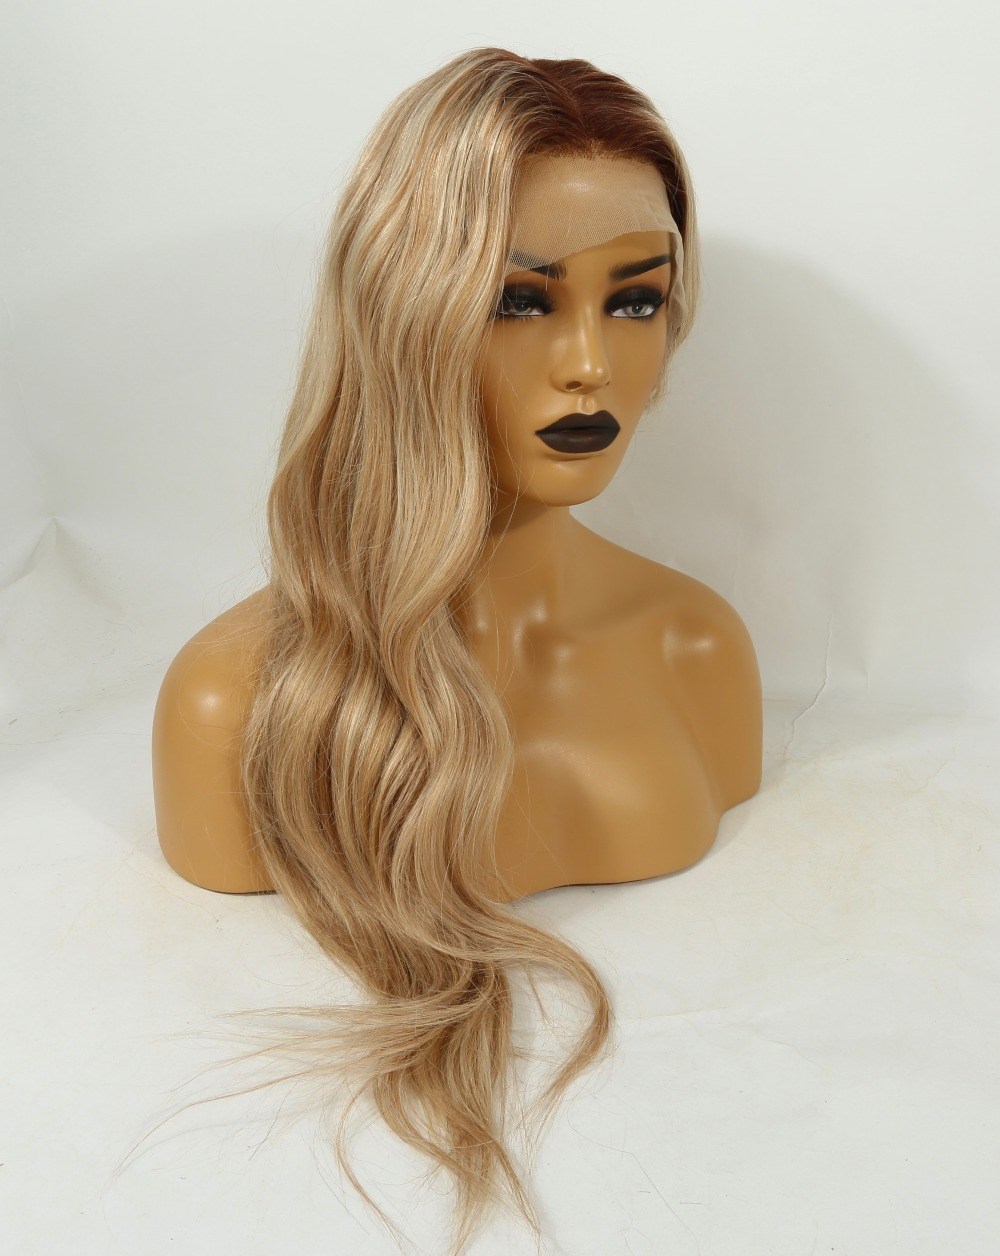 Image 5 - Fabwigs 150% Density T4/27/613 Blonde Full Lace Human Hair Wigs Brazilian Remy Ombre Highlights Lemi Color Lace Wigs Deep Part-in Human Hair Lace Wigs from Hair Extensions & Wigs